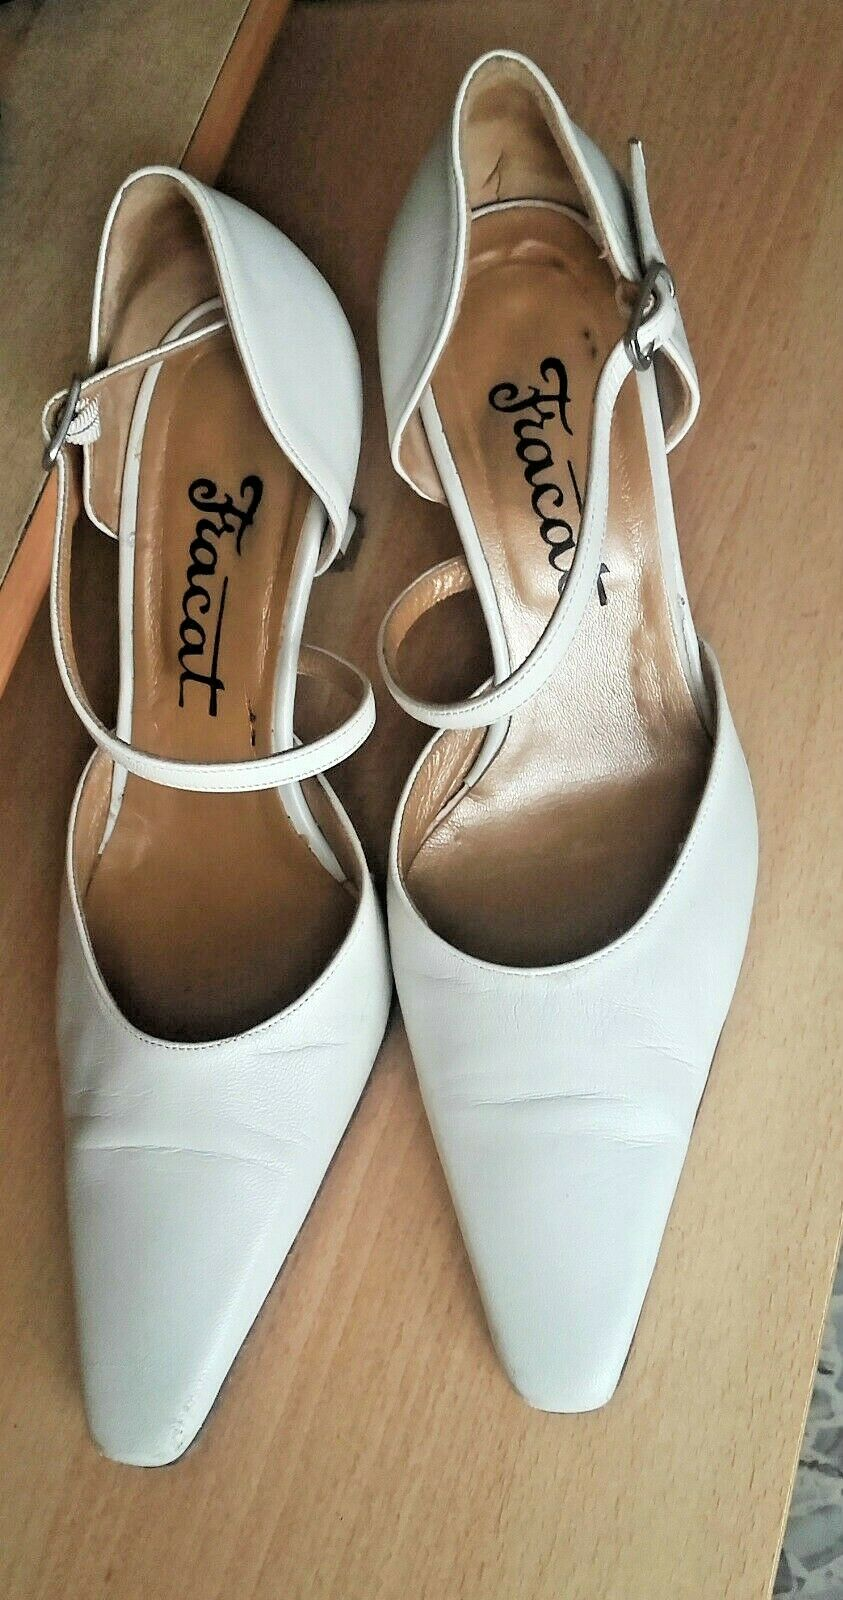 Bridal Wedding Shoes in Leather, Brand fracat, Cream, Size 36